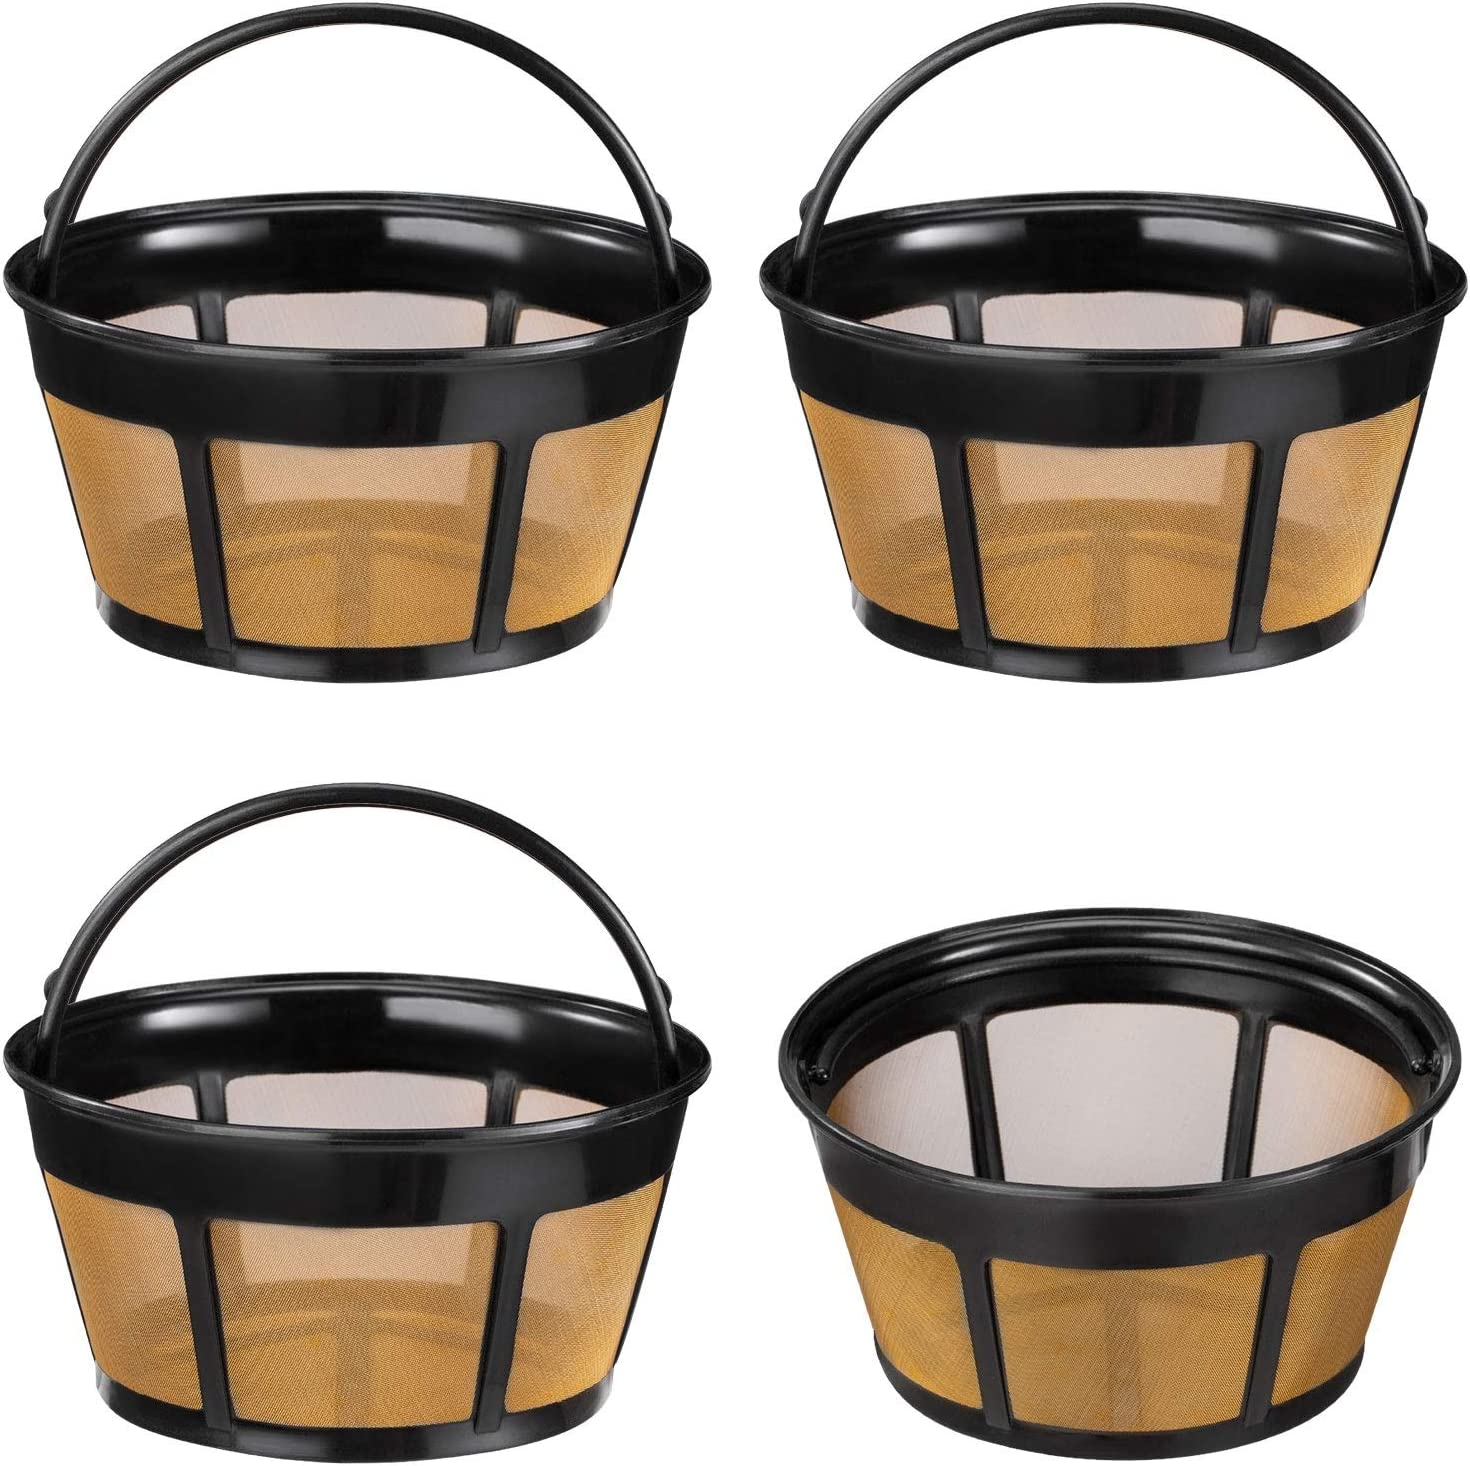 Reusable Classic Coffee Filter Award 4 Pack Re Cup Filters Basket 8-12